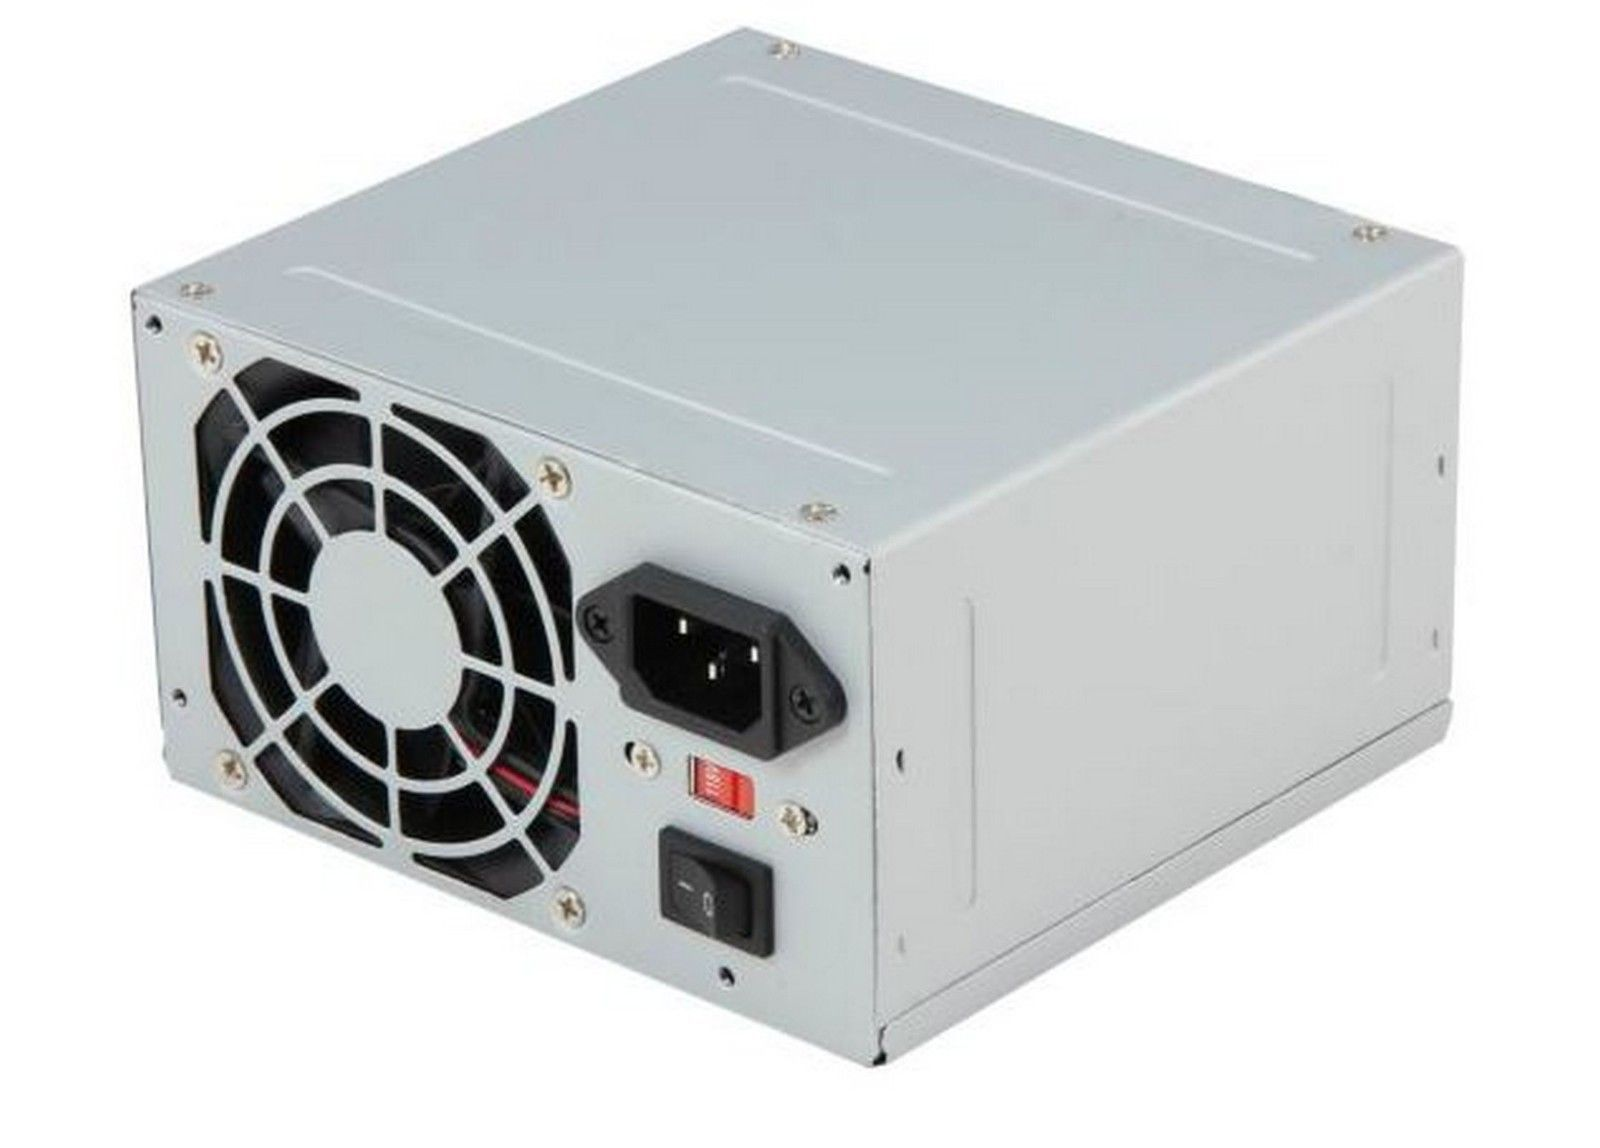 New PC Power Supply Upgrade for Dell Inspiron 531S Slimline SFF Computer